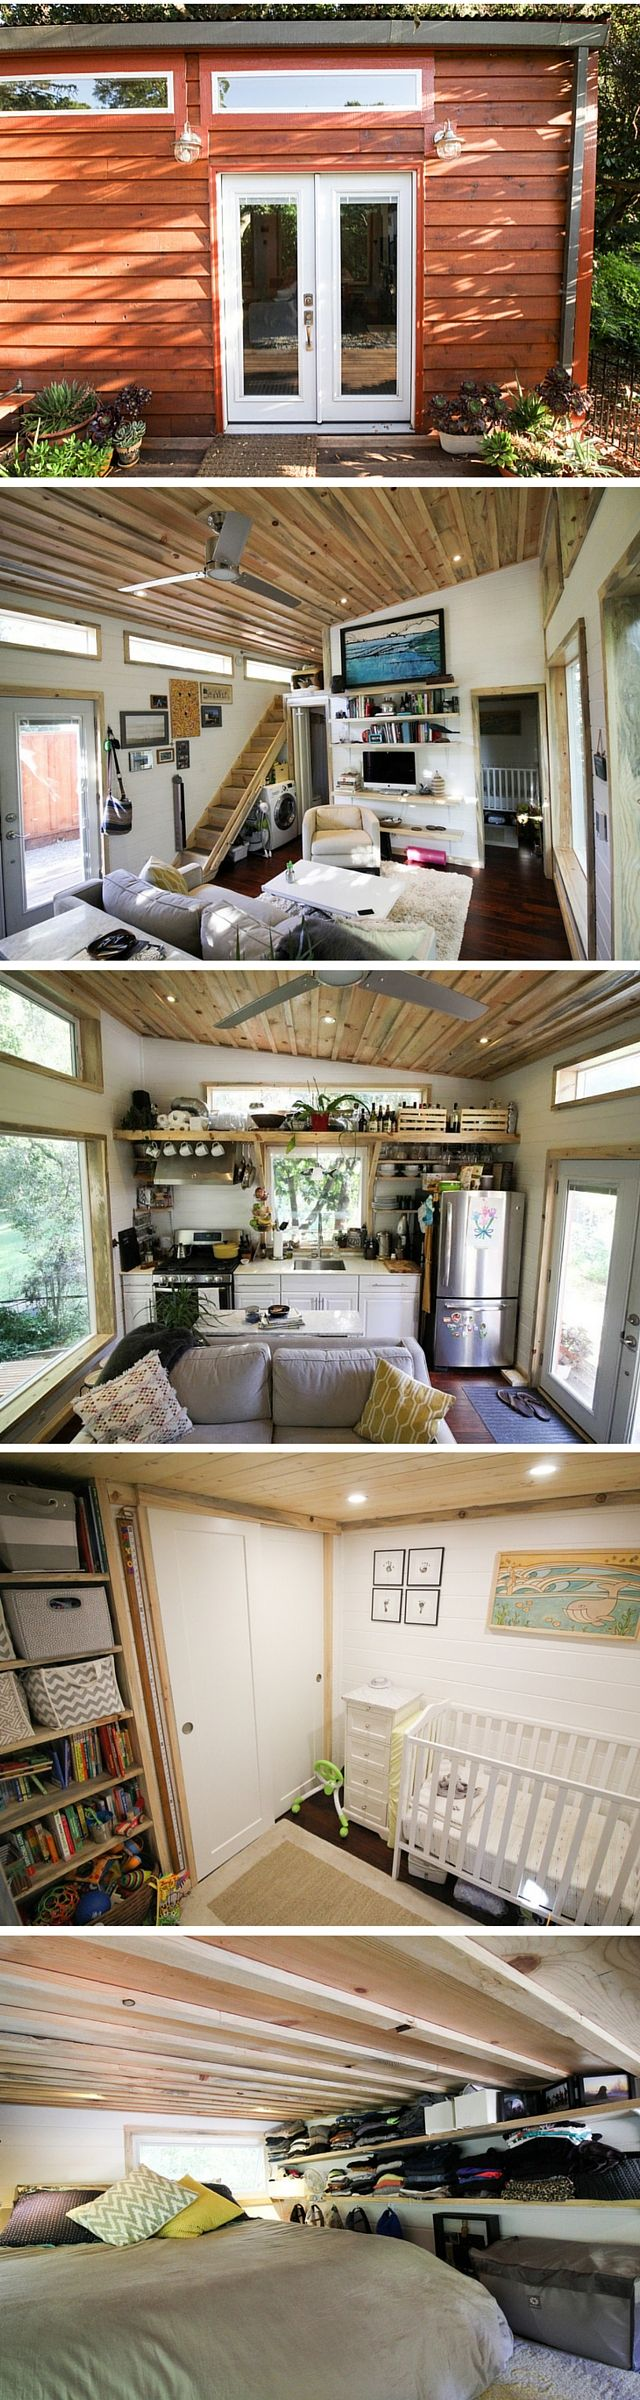 a 400 sq ft cabin with two rooms! the home is also a certified